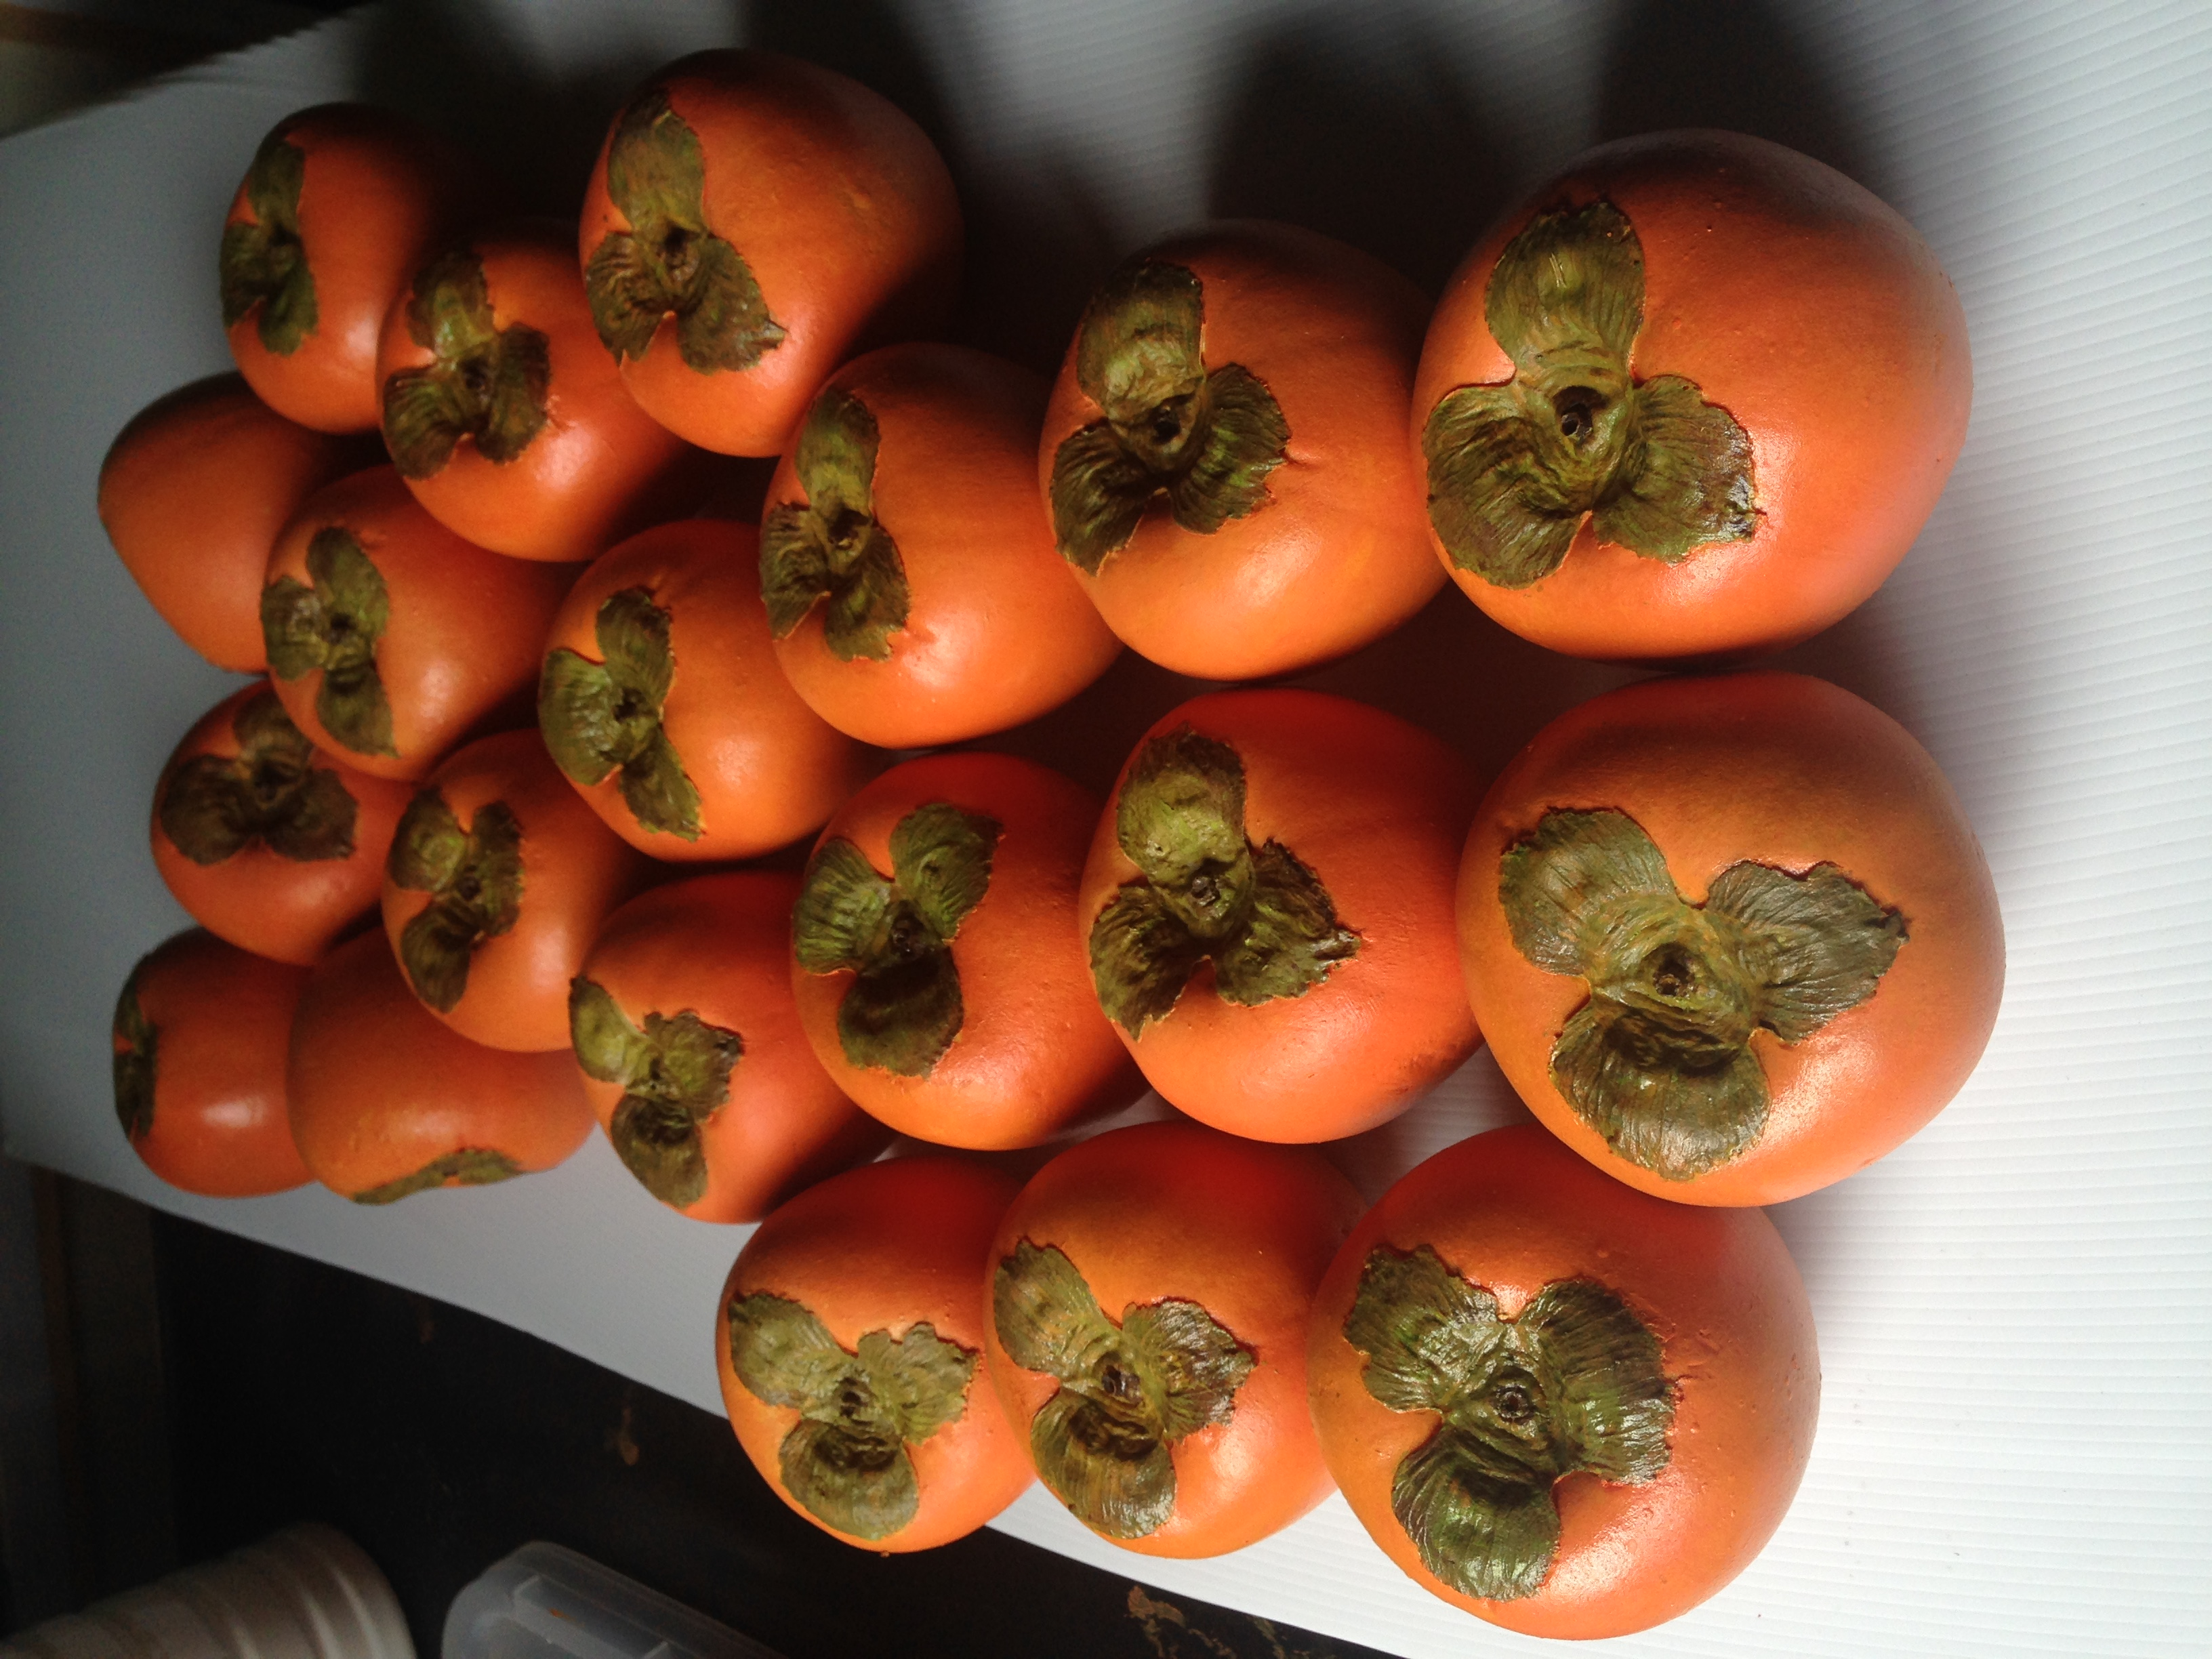 Fabricated persimmons